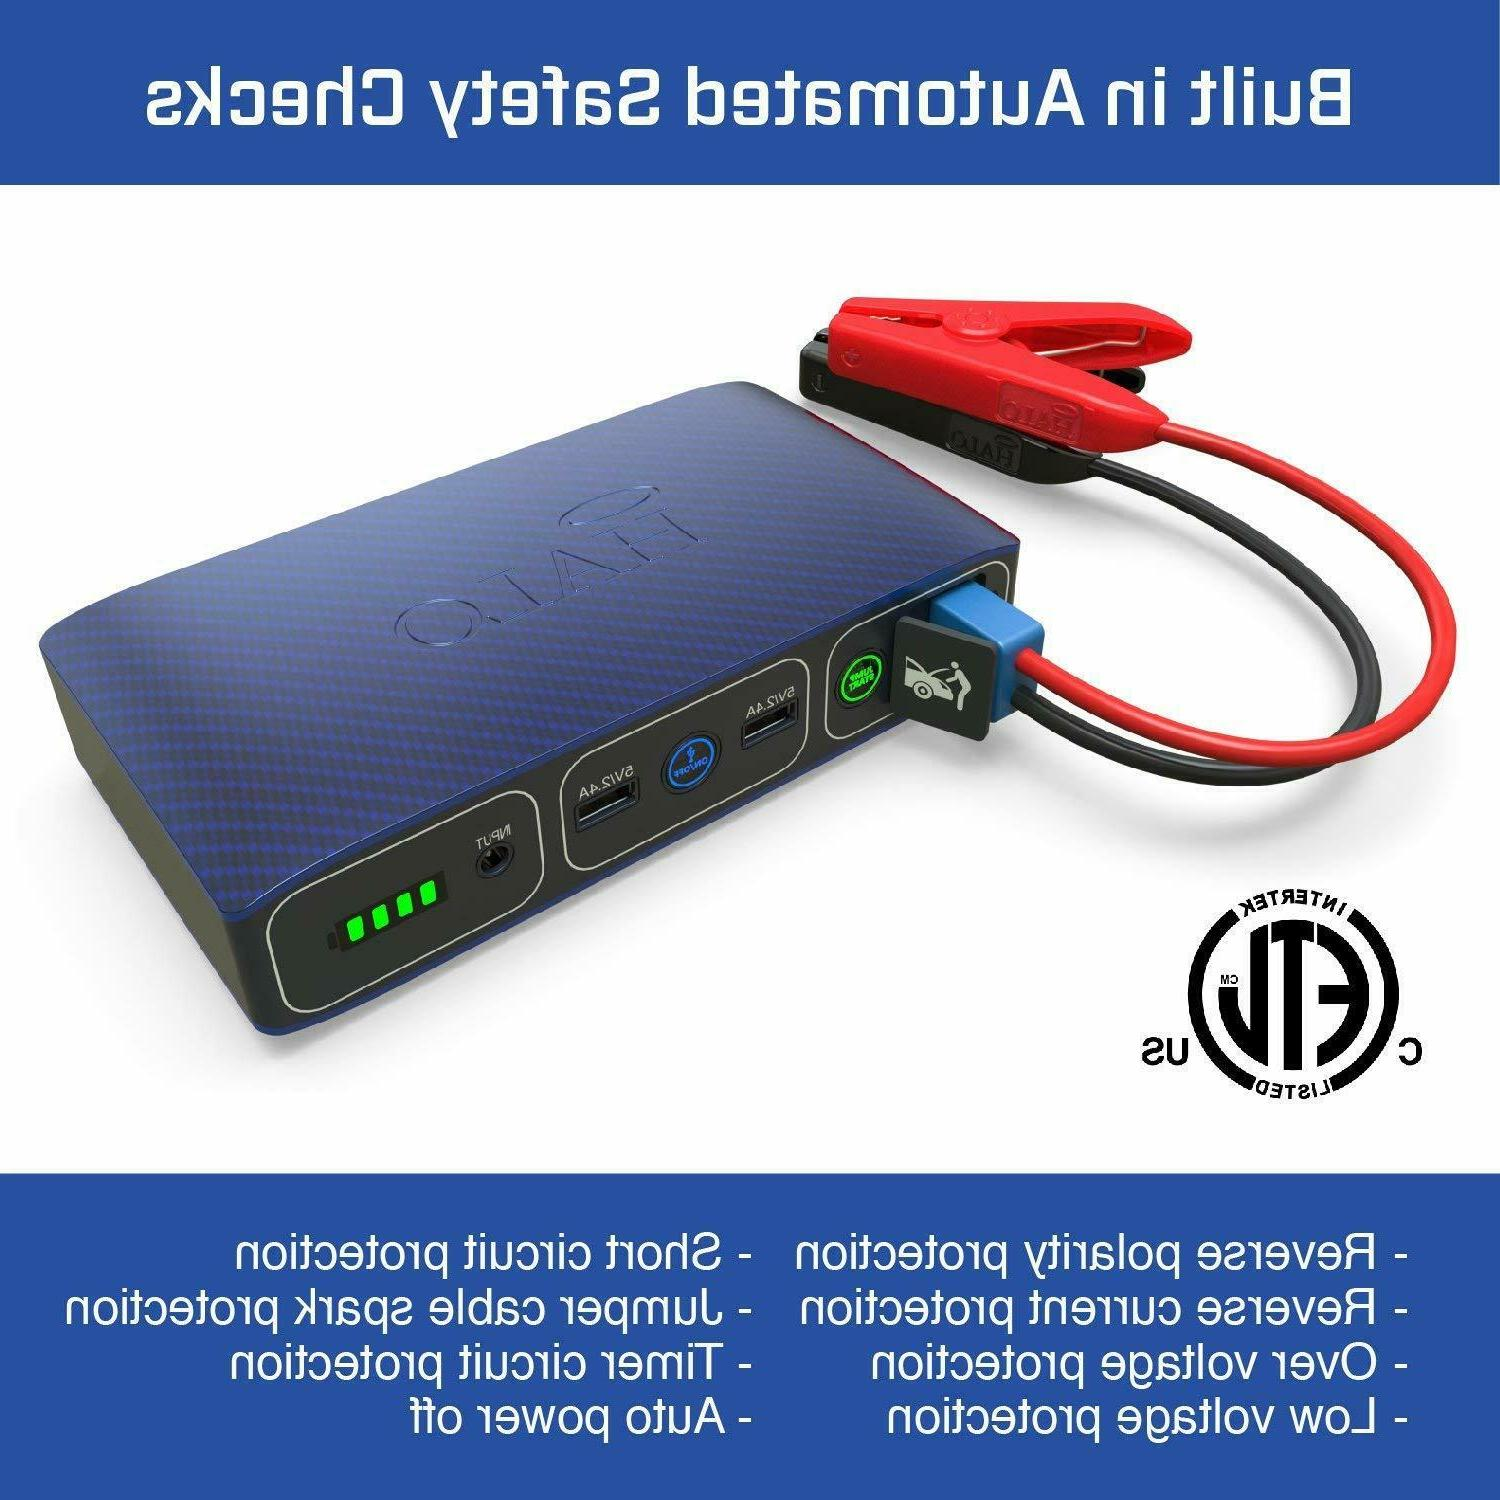 Halo Bolt Portable 57720 MWh External Battery Power Bank